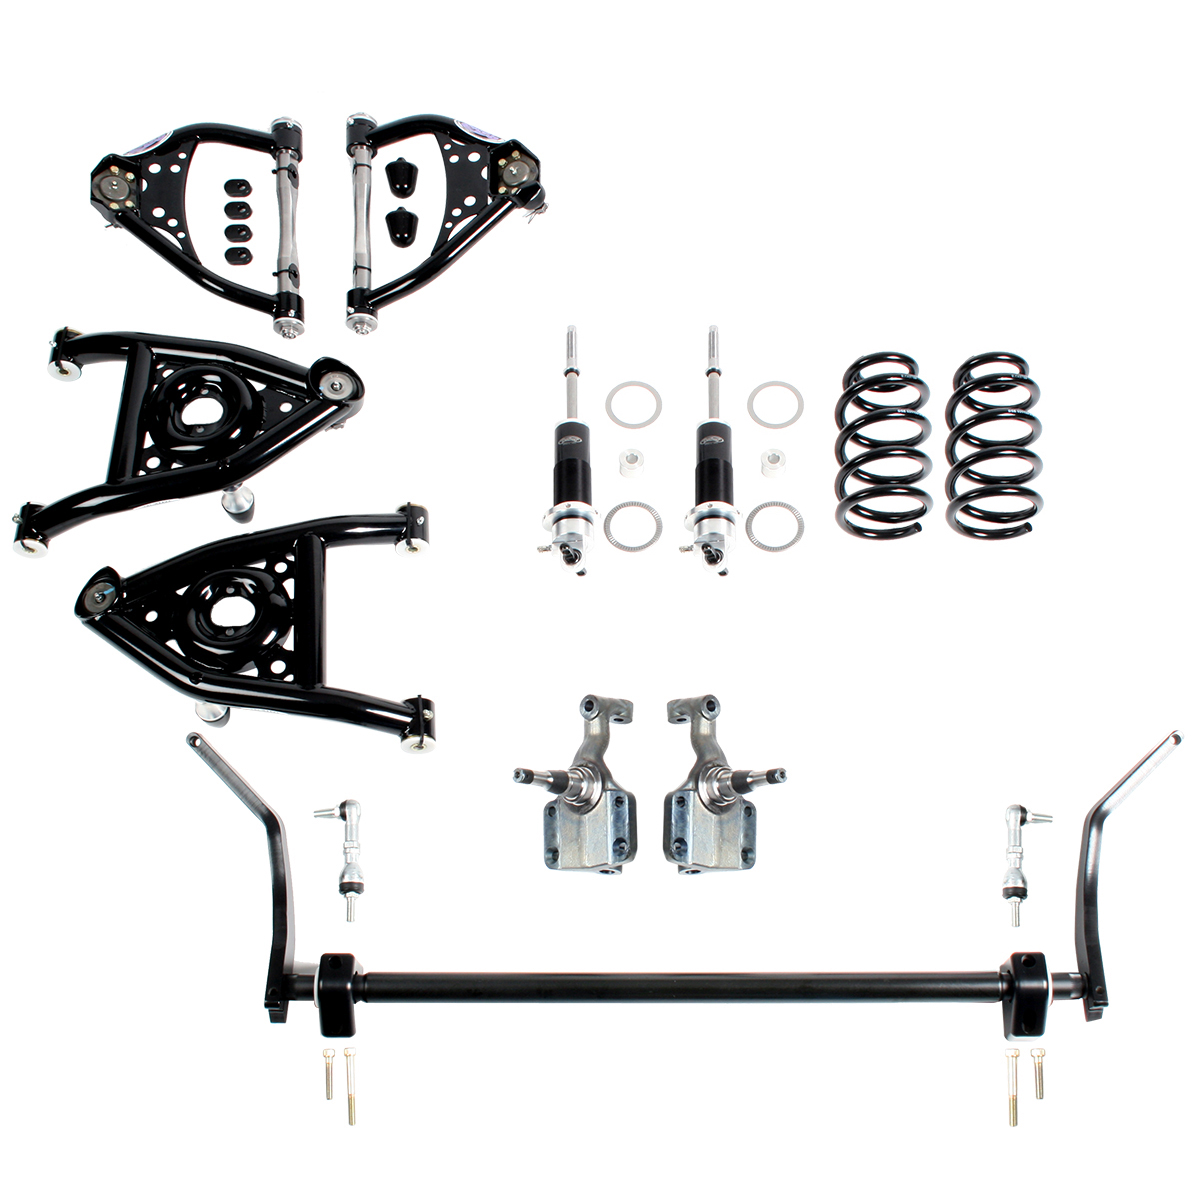 Detroit Speed  Speed Kit 2 Front Suspension Kit with Splined Sway Bar Single Adjustable Shocks 1967 A-Body BBC